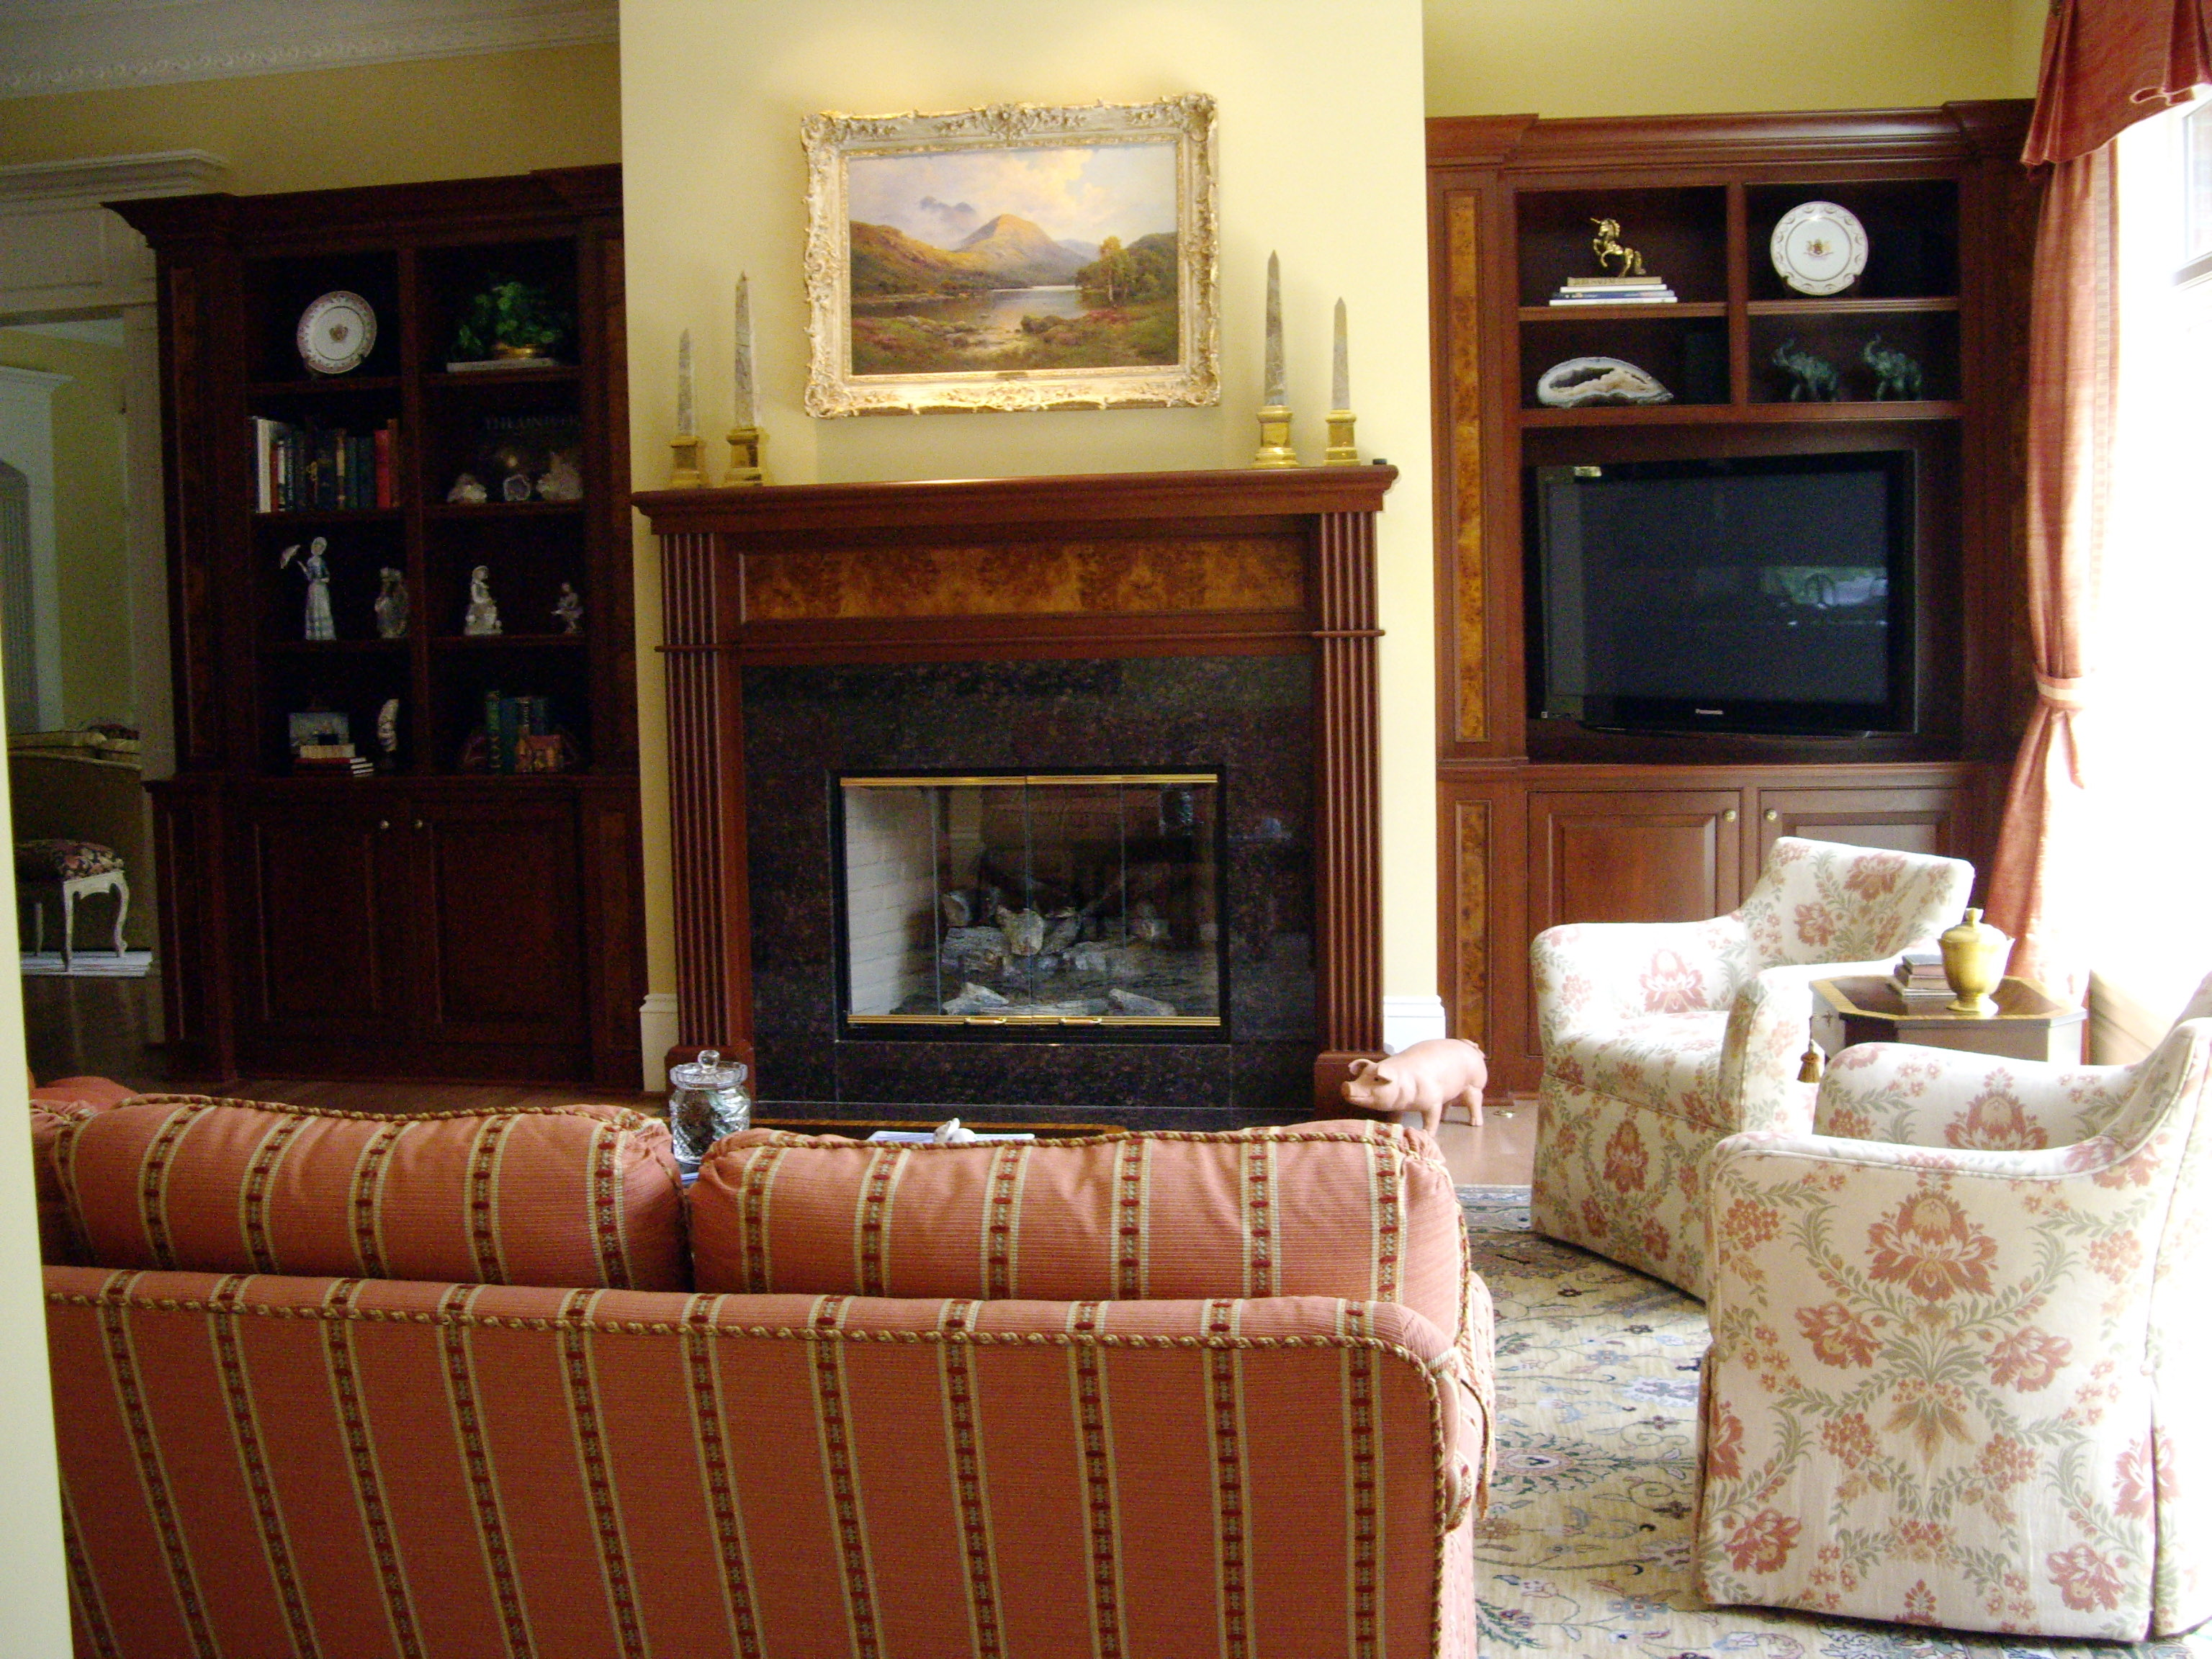 Lum Bookcases and Mantle 1